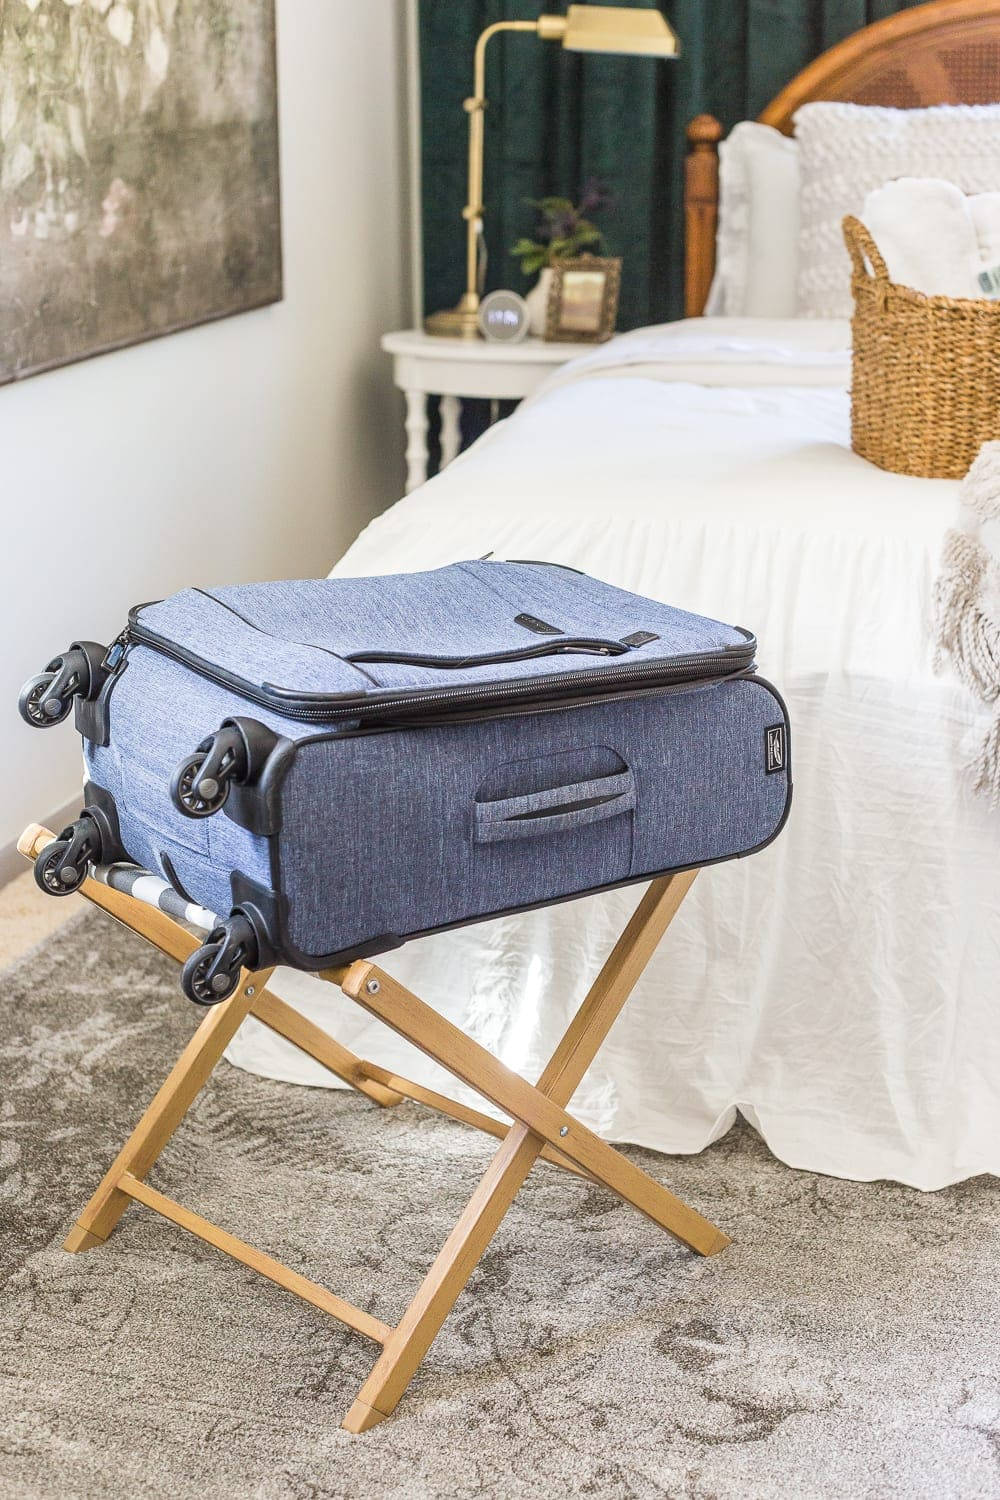 38 Guest Bedroom Essentials | Have a luggage rack so guests have a place to stow their suitcase.